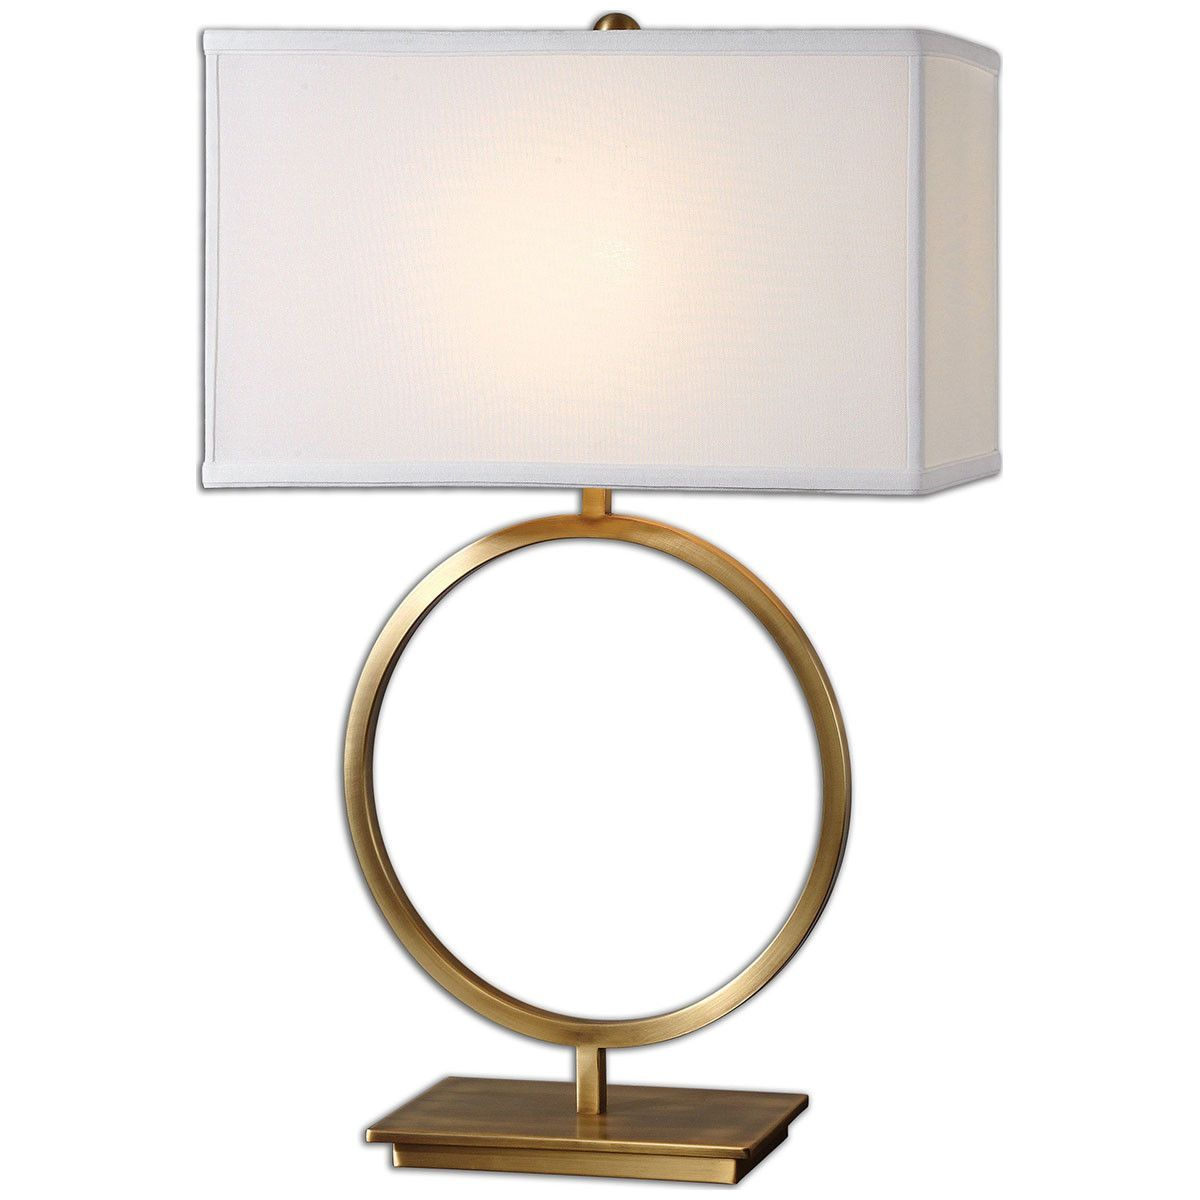 Uttermost Duara Circle Table Lamp 26559-1 | Circle table and Products